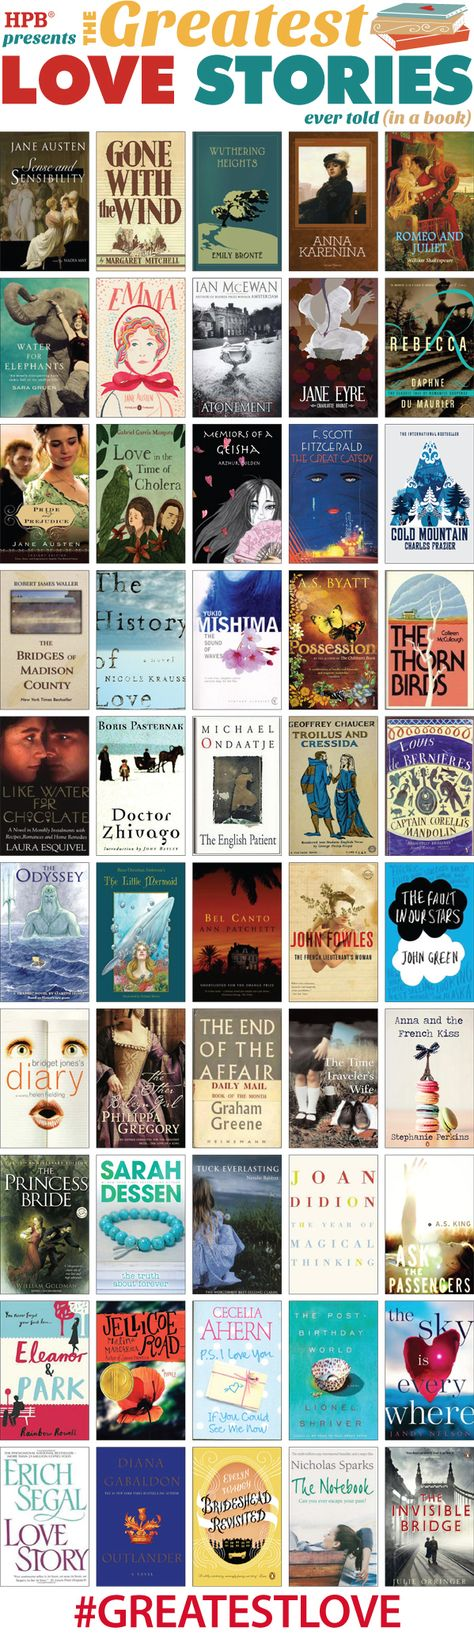 Half Magic [Edward Eager, N. M. Bodecker (Illustrator)] on selectcarapp.ml *FREE* shipping on qualifying offers. Since Half Magic first hit bookshelves in , Edward Eager's tales of magic have become beloved classics. Now four cherished stories by Edward Eager about vacationing cousins who stumble into magical doings and whimsical adventures are available in updated hardcover and paperback.